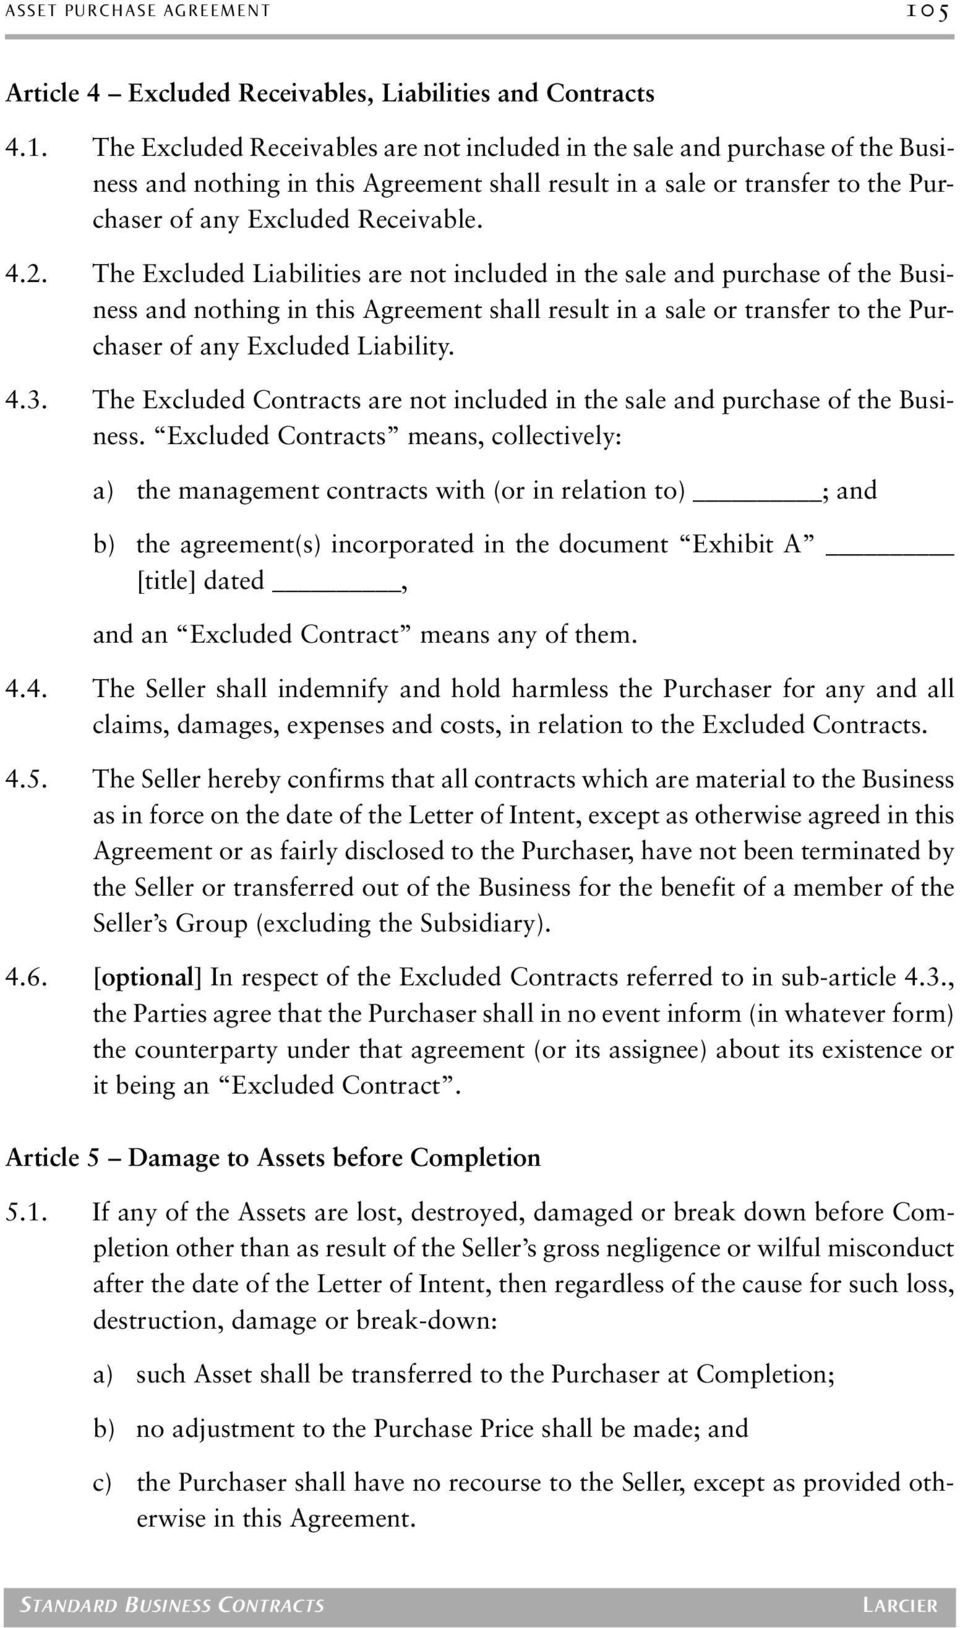 The Excluded Receivables are not included in the sale and purchase of the Business and nothing in this Agreement shall result in a sale or transfer to the Purchaser of any Excluded Receivable. 4.2.